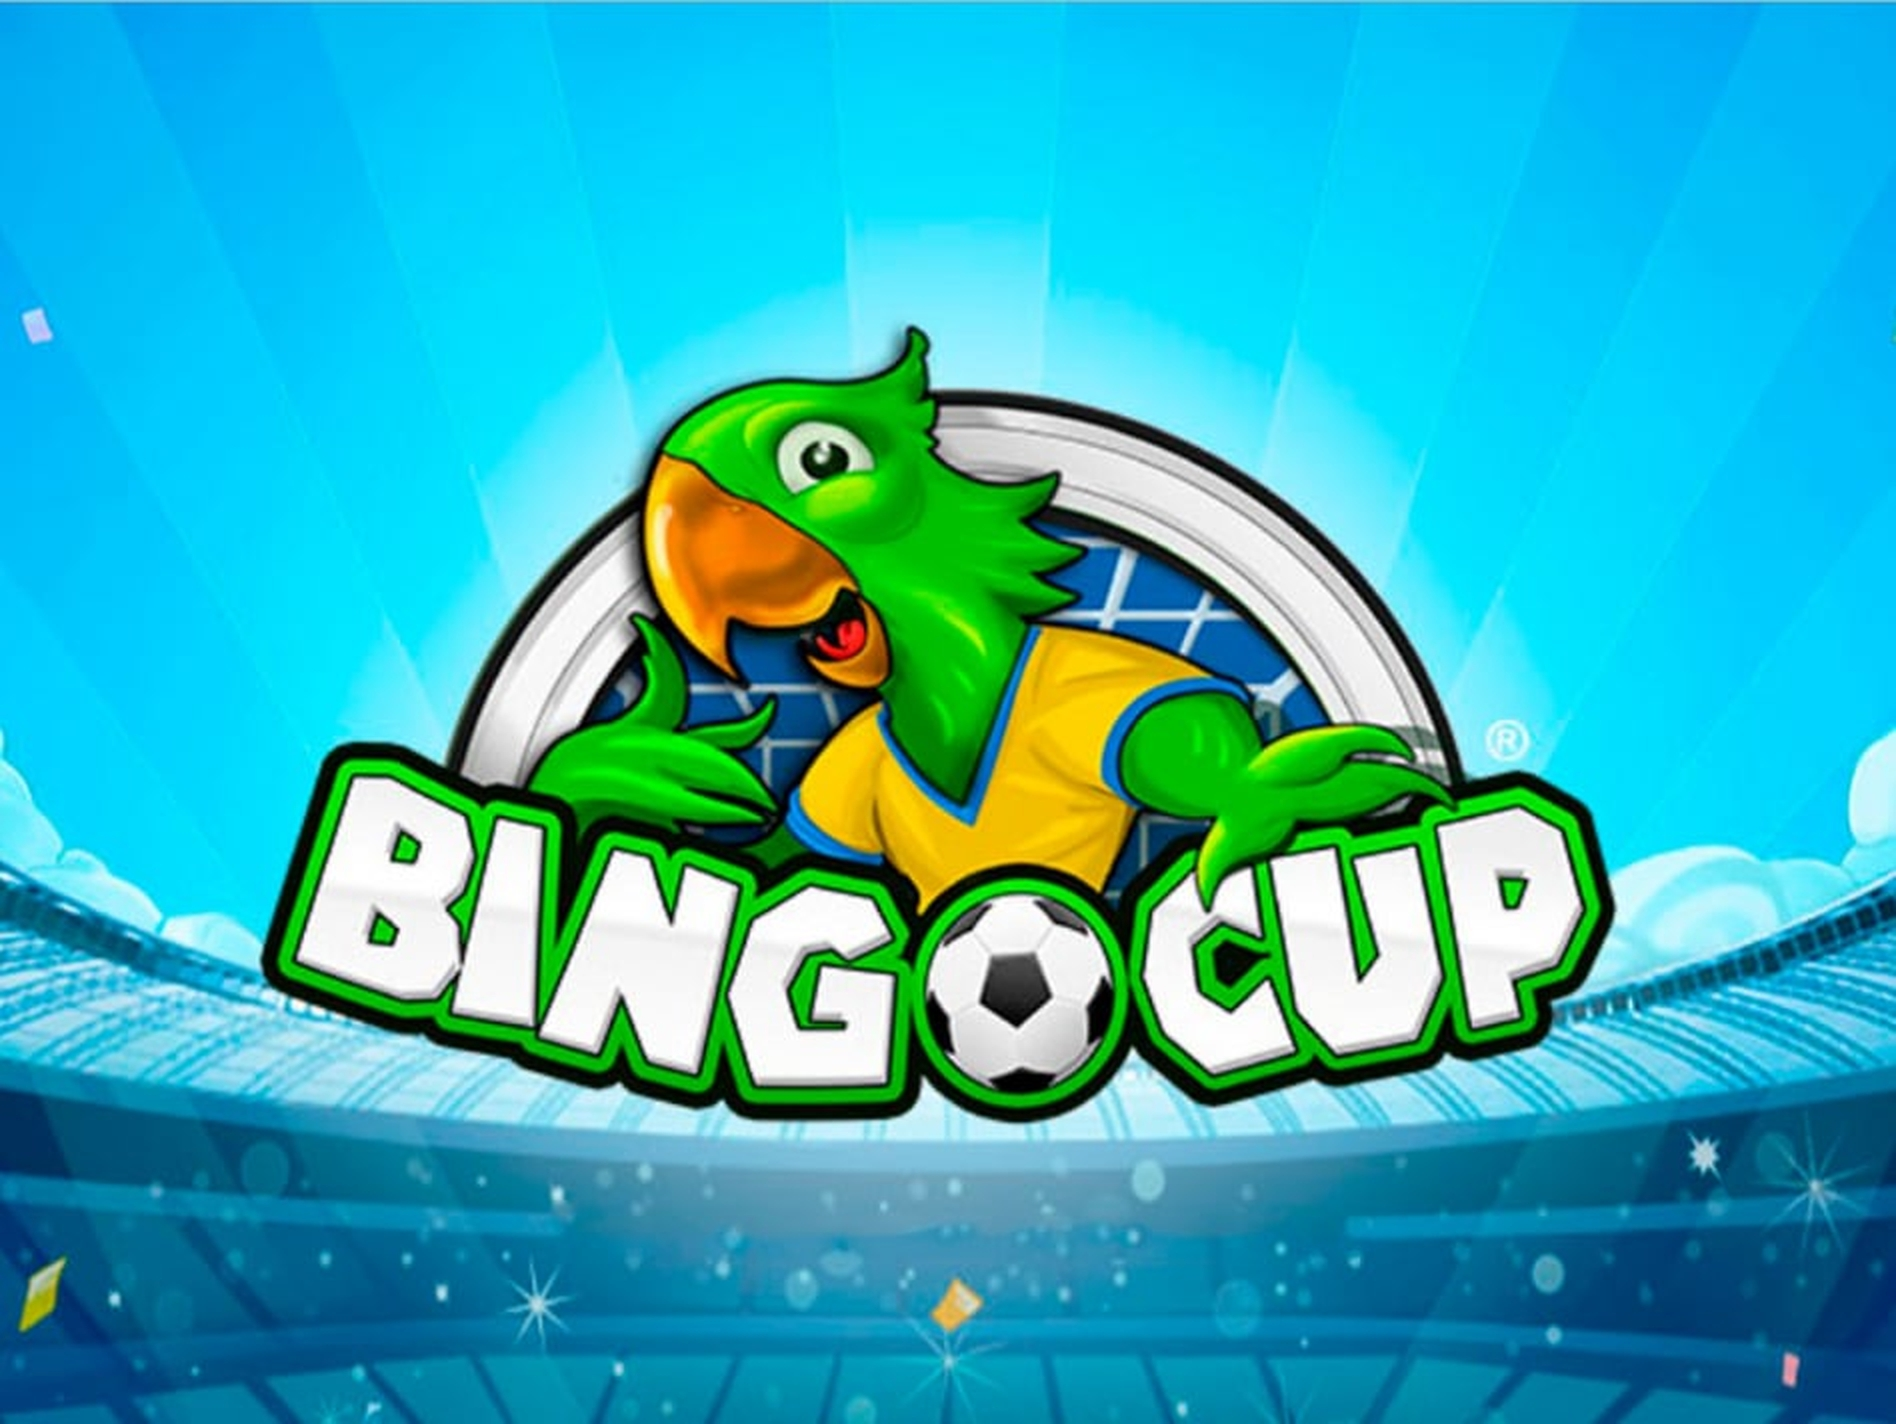 The Bingo Cup Online Slot Demo Game by Zitro